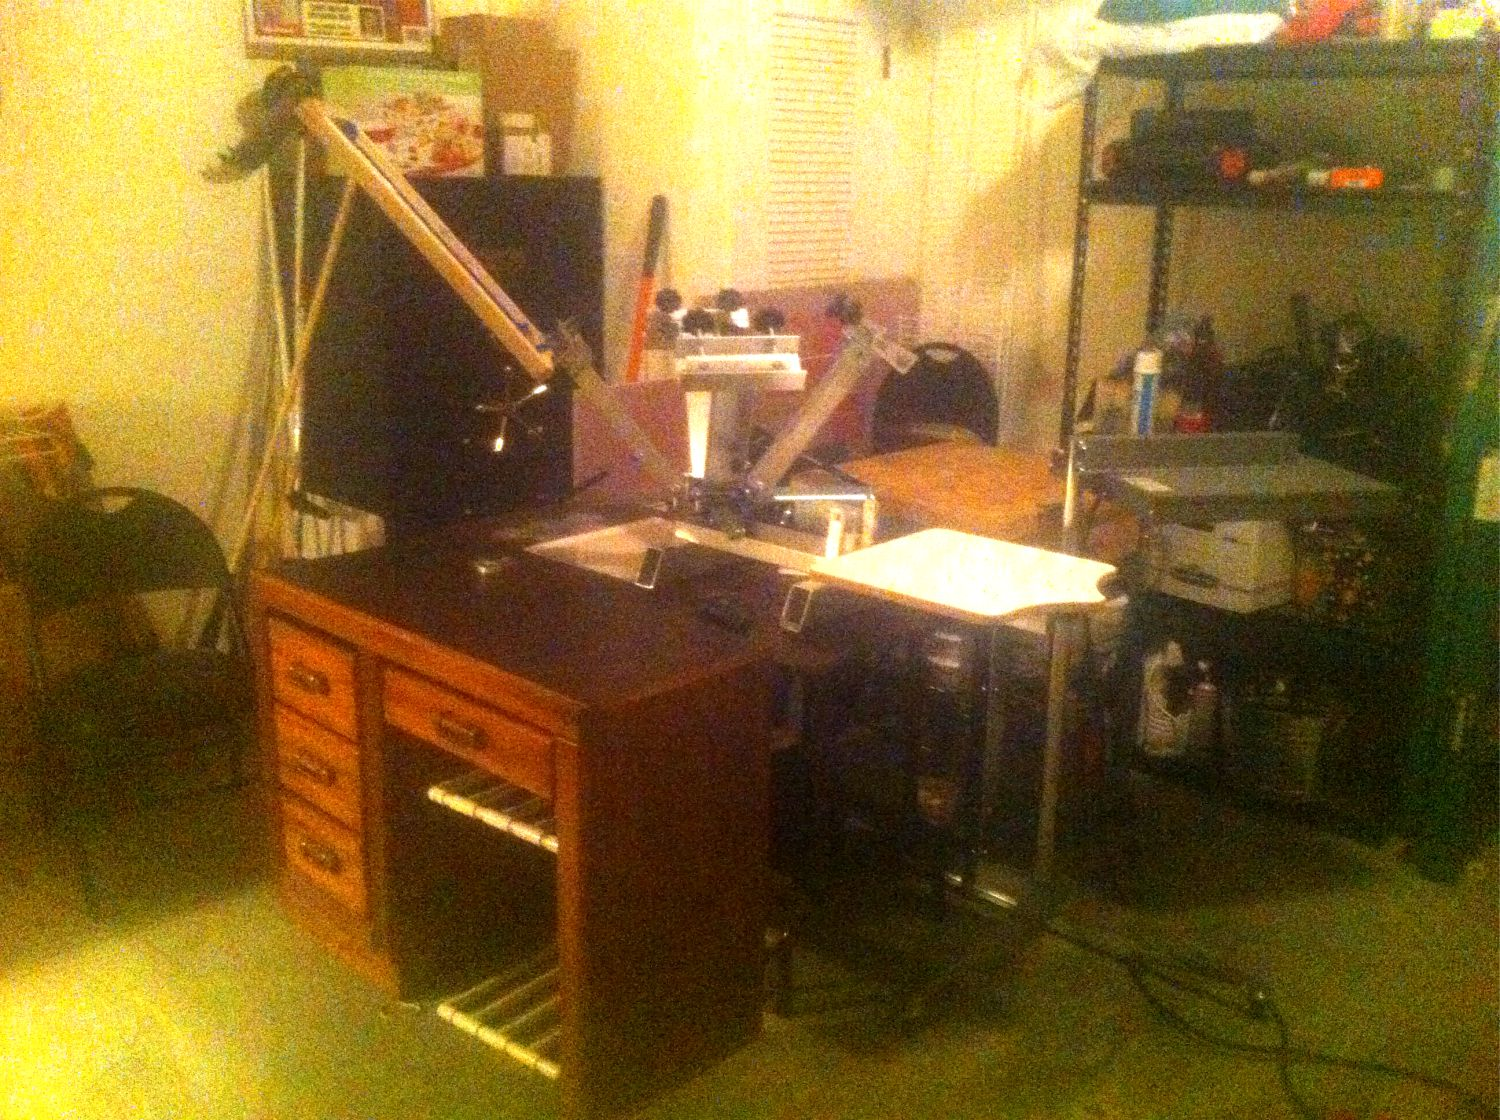 Our first print shop located in the garage. It was the perfect setup to learn on.